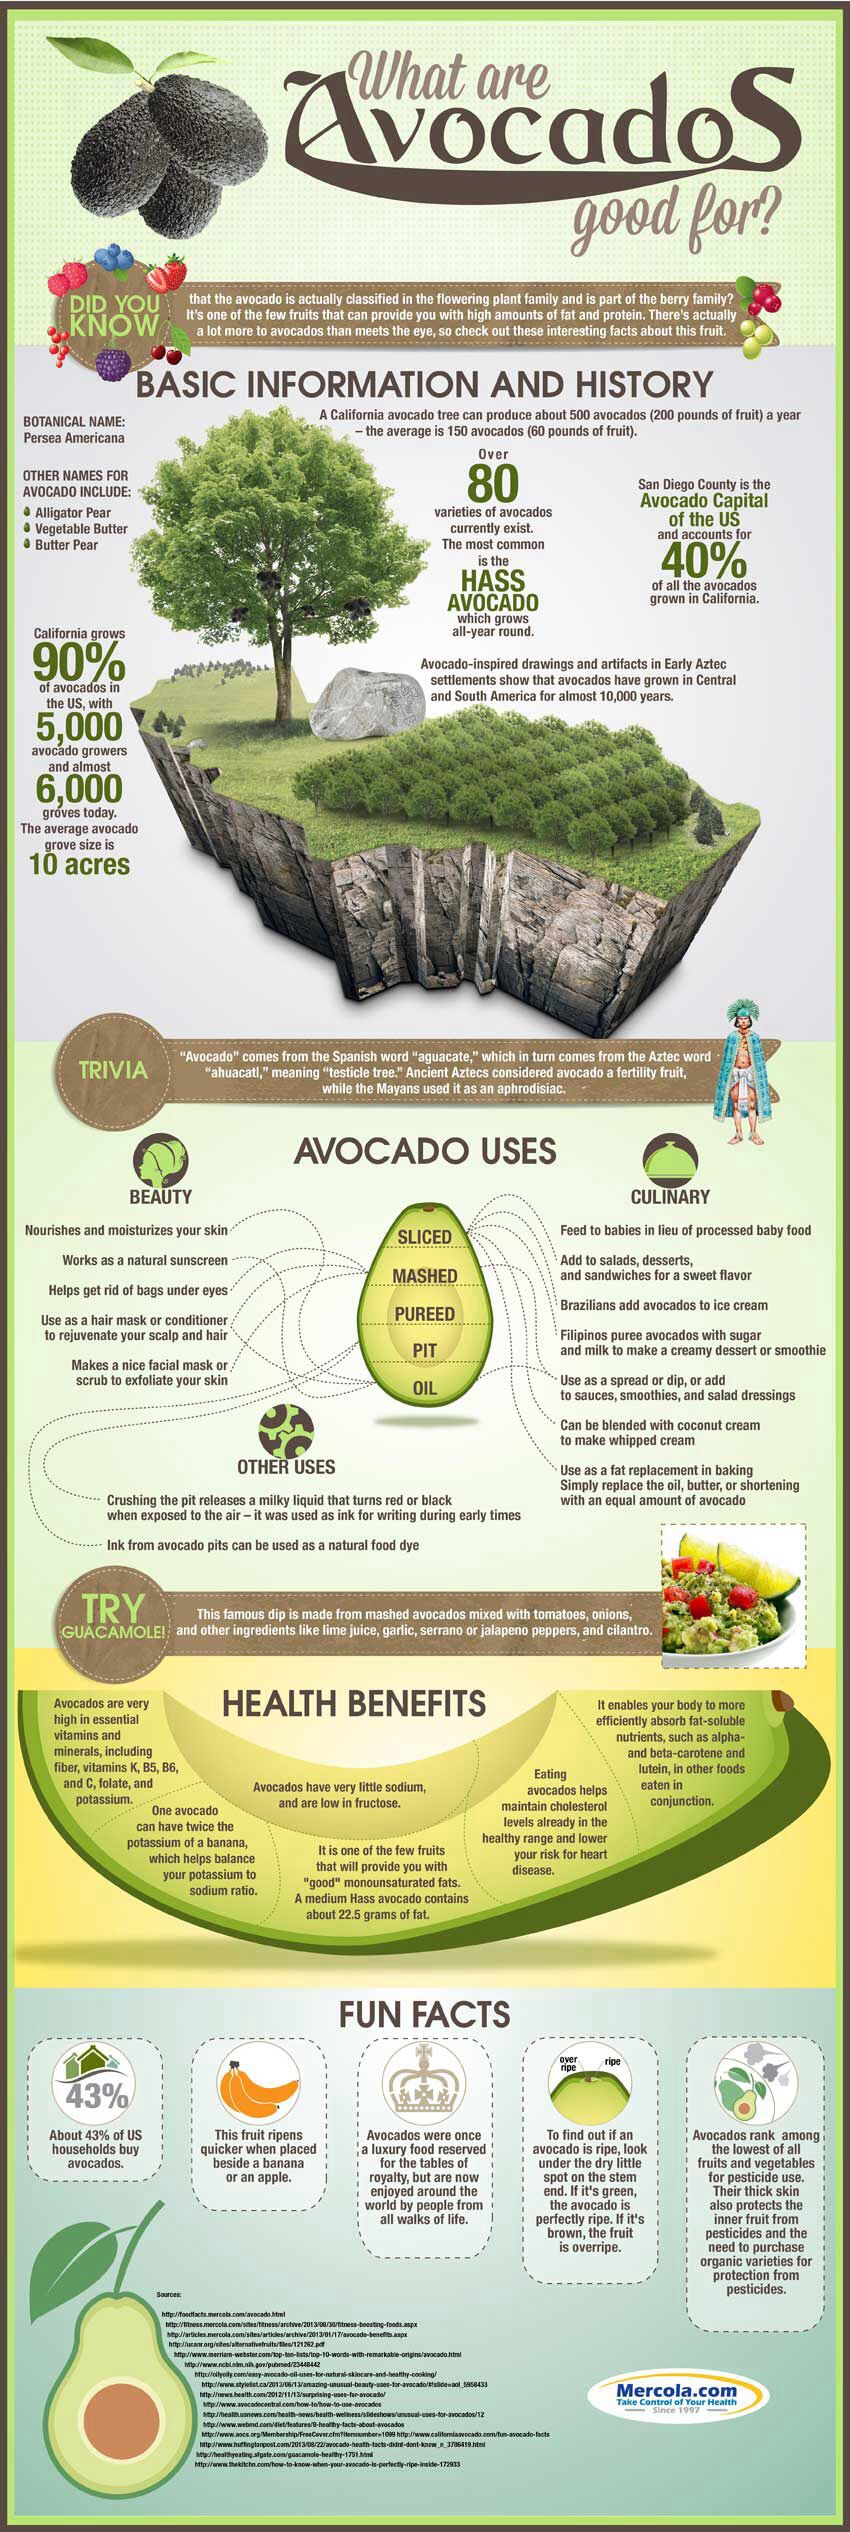 What Are Avocados Good For